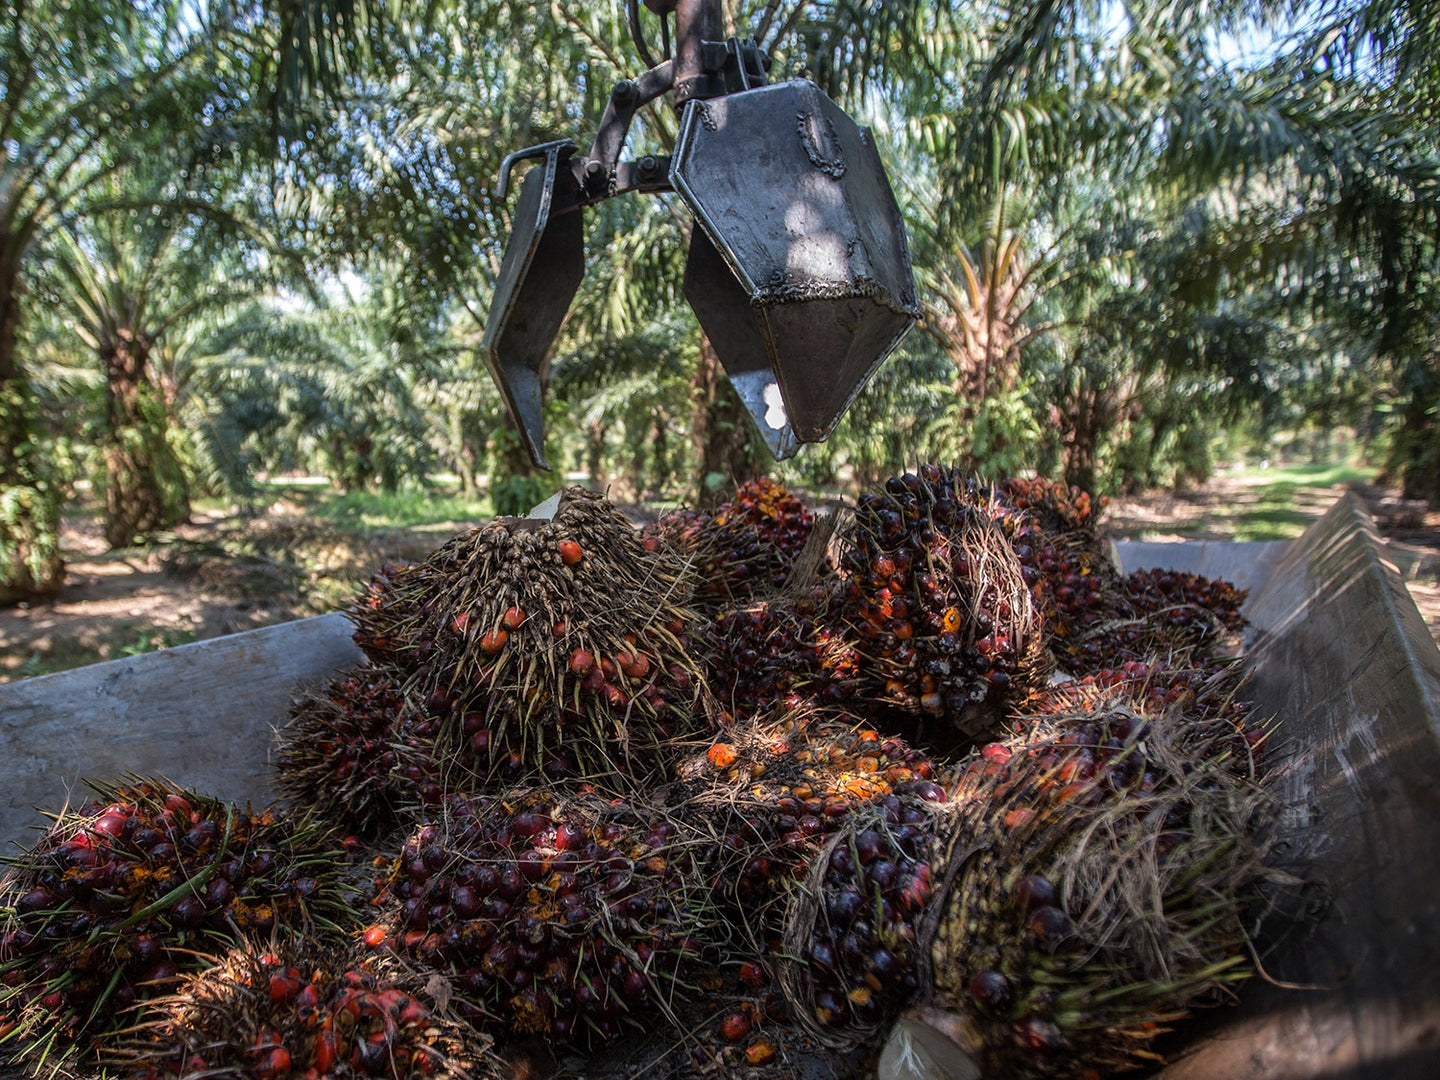 Europe's ban on palm oil might actually hurt the environment